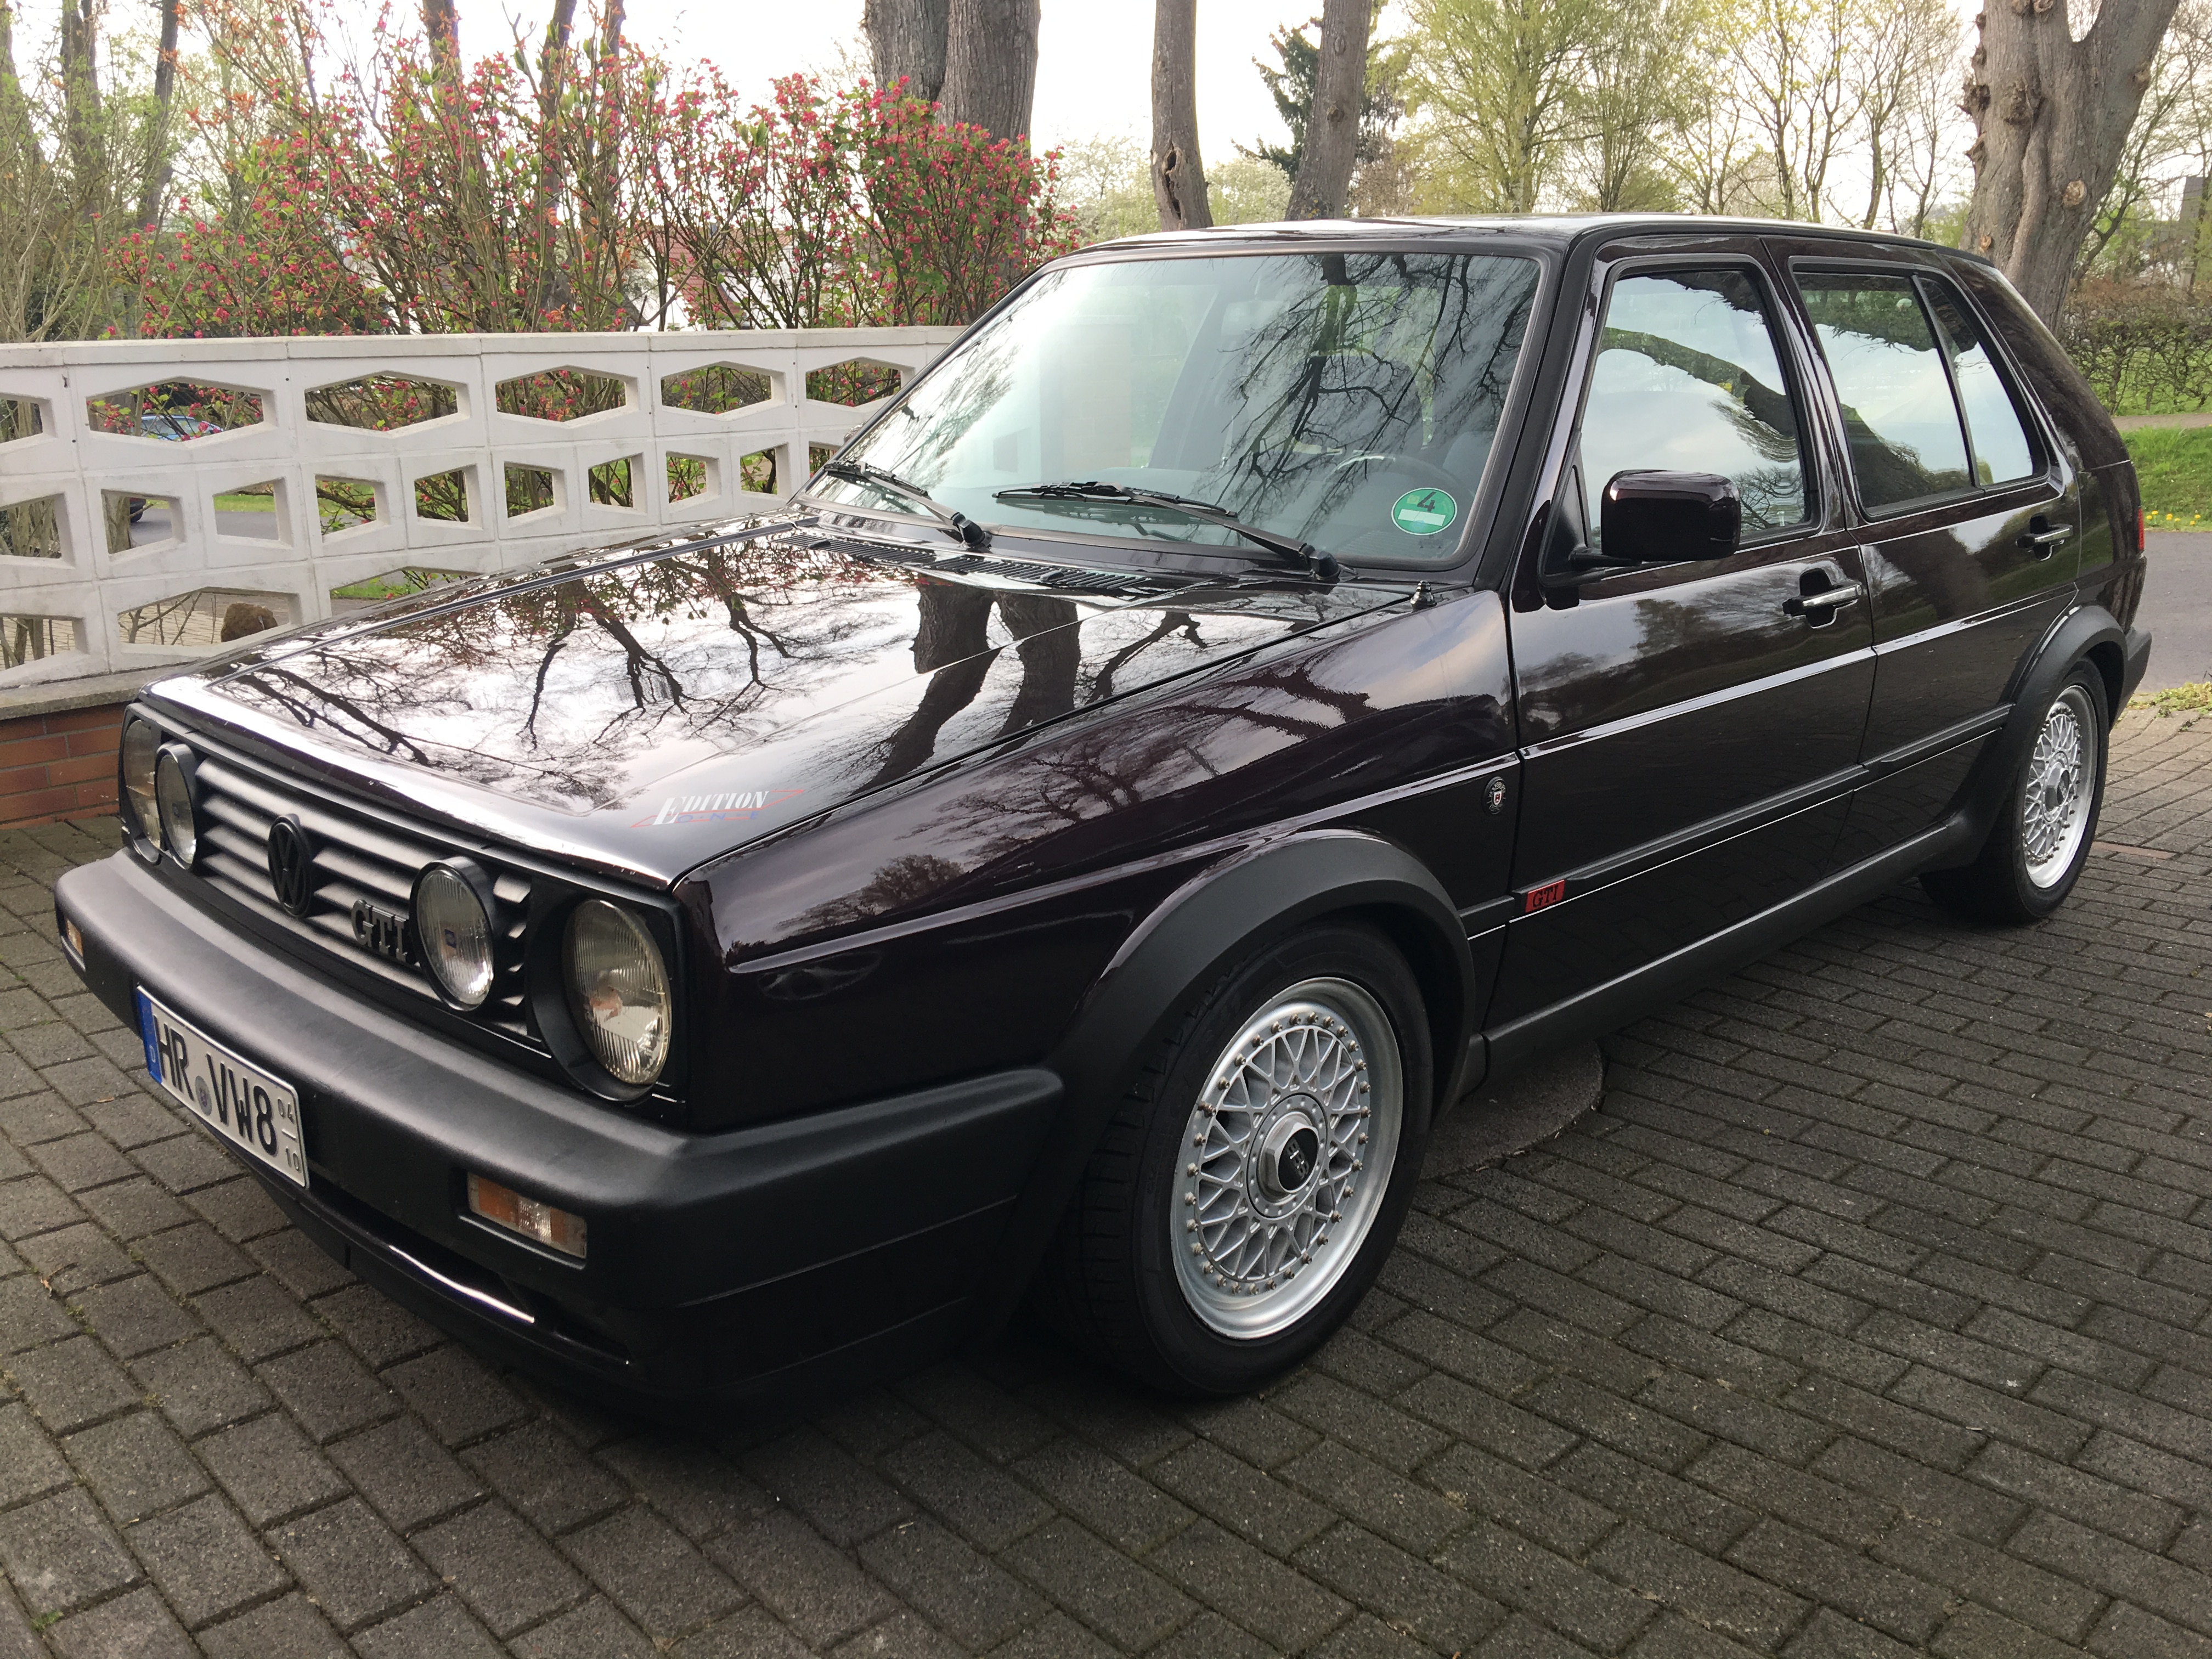 Quicklink: Golf II GTI Editione One